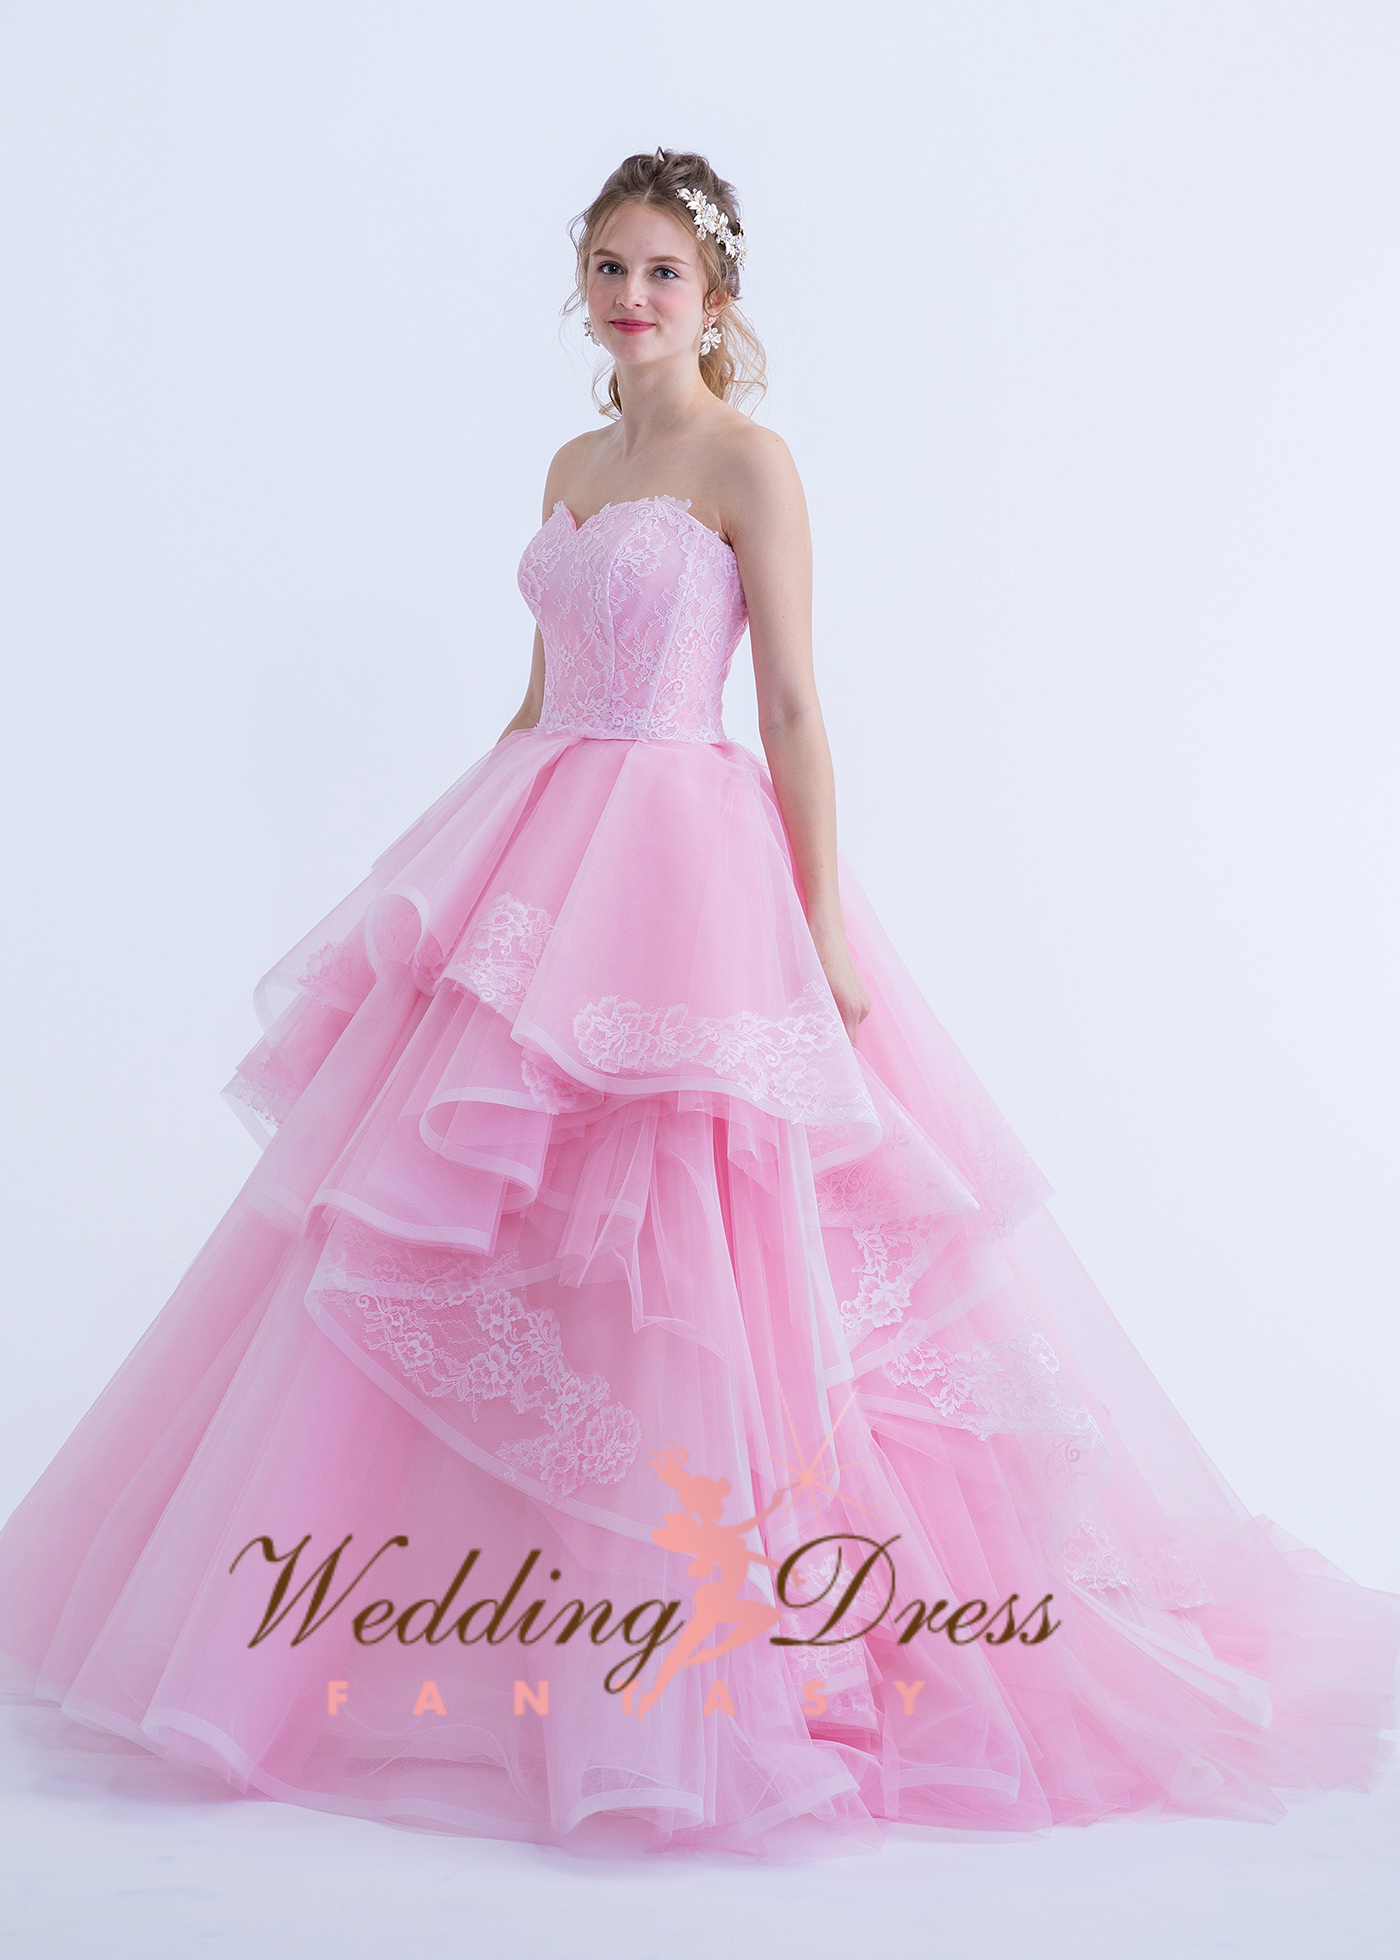 pinkweddingdressl.jpg